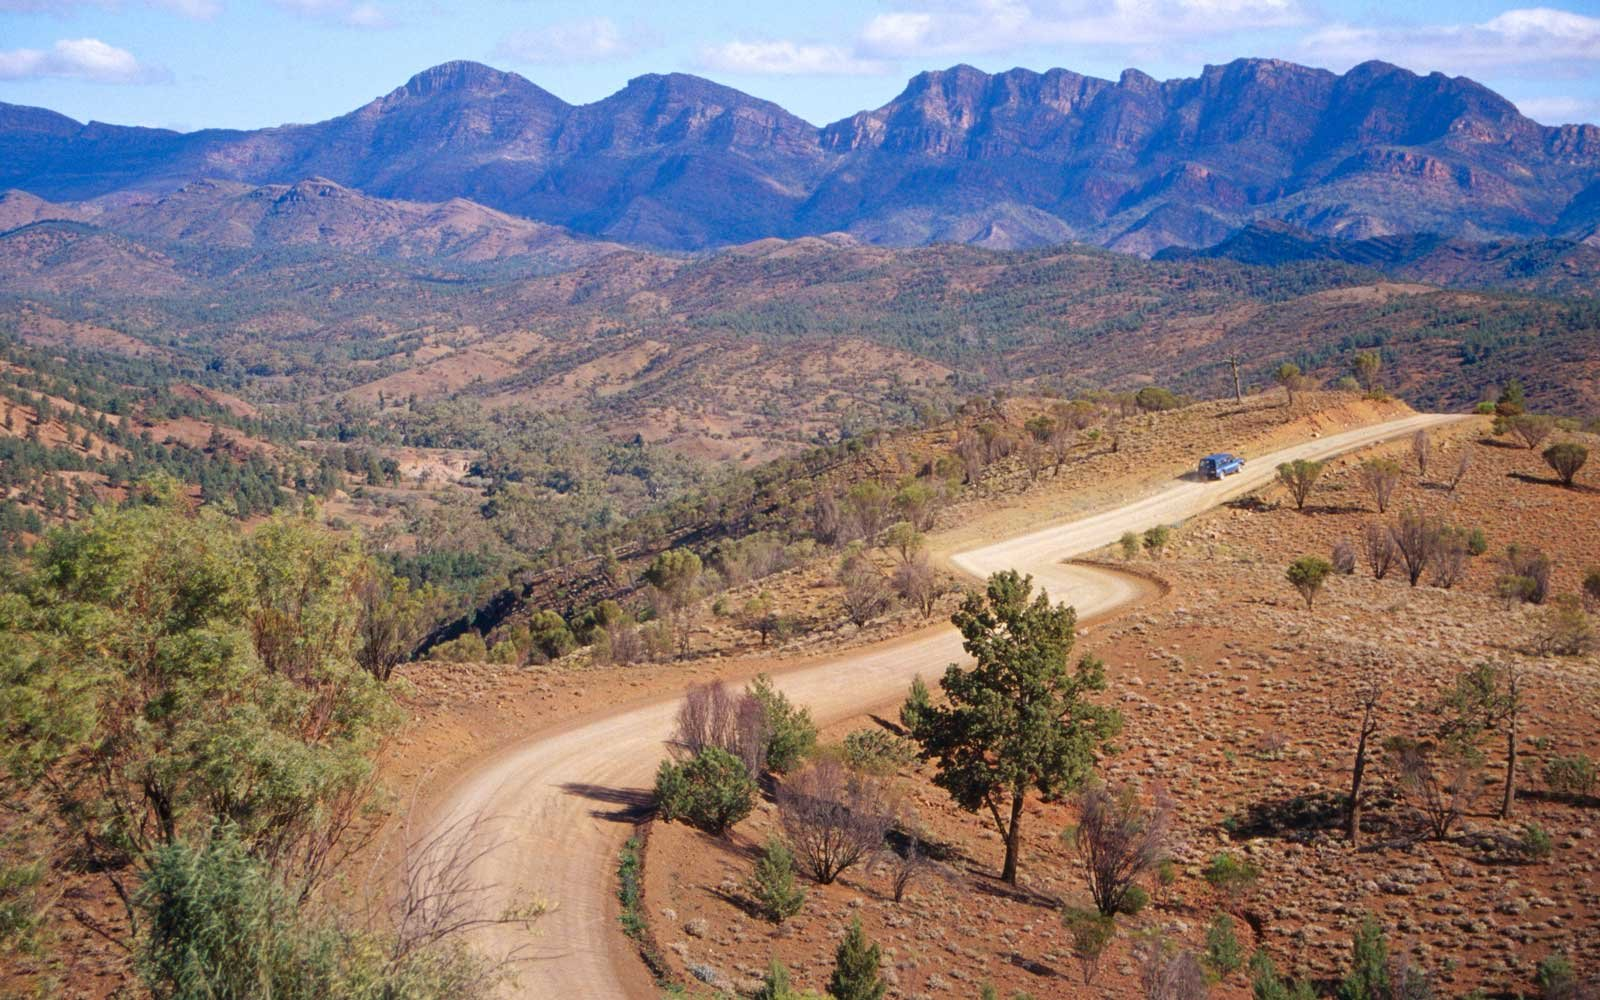 Winding Road through South Australia's, Flinders Ranges National Park.